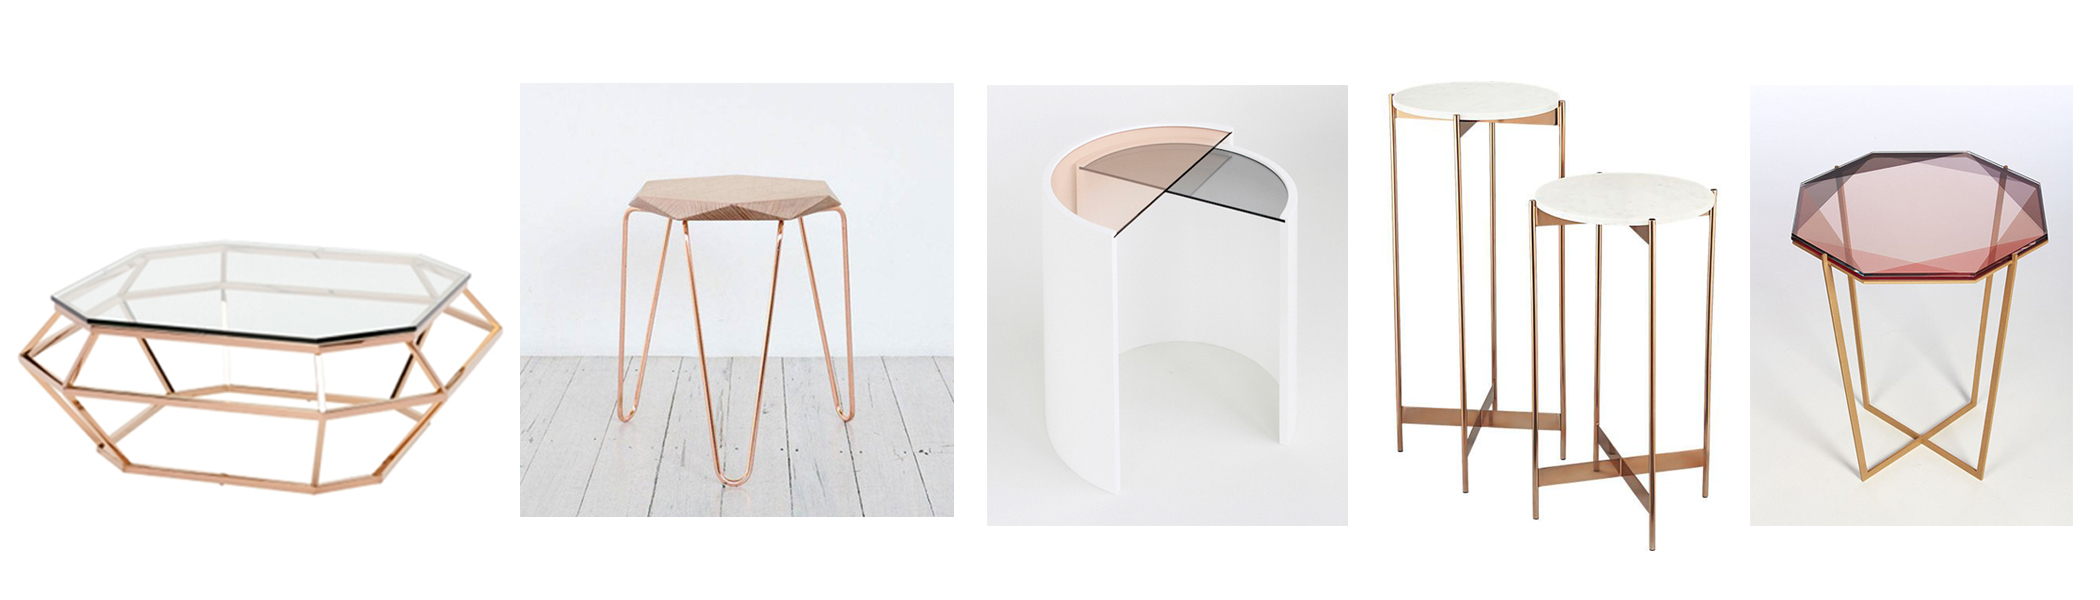 Nuevo Modern Furniture Diamond sq coffee table $1450; Klein Gem stool $275; Bower contour side table; CB2 Marble rose gold cocktail tables $179; Gem coffee table